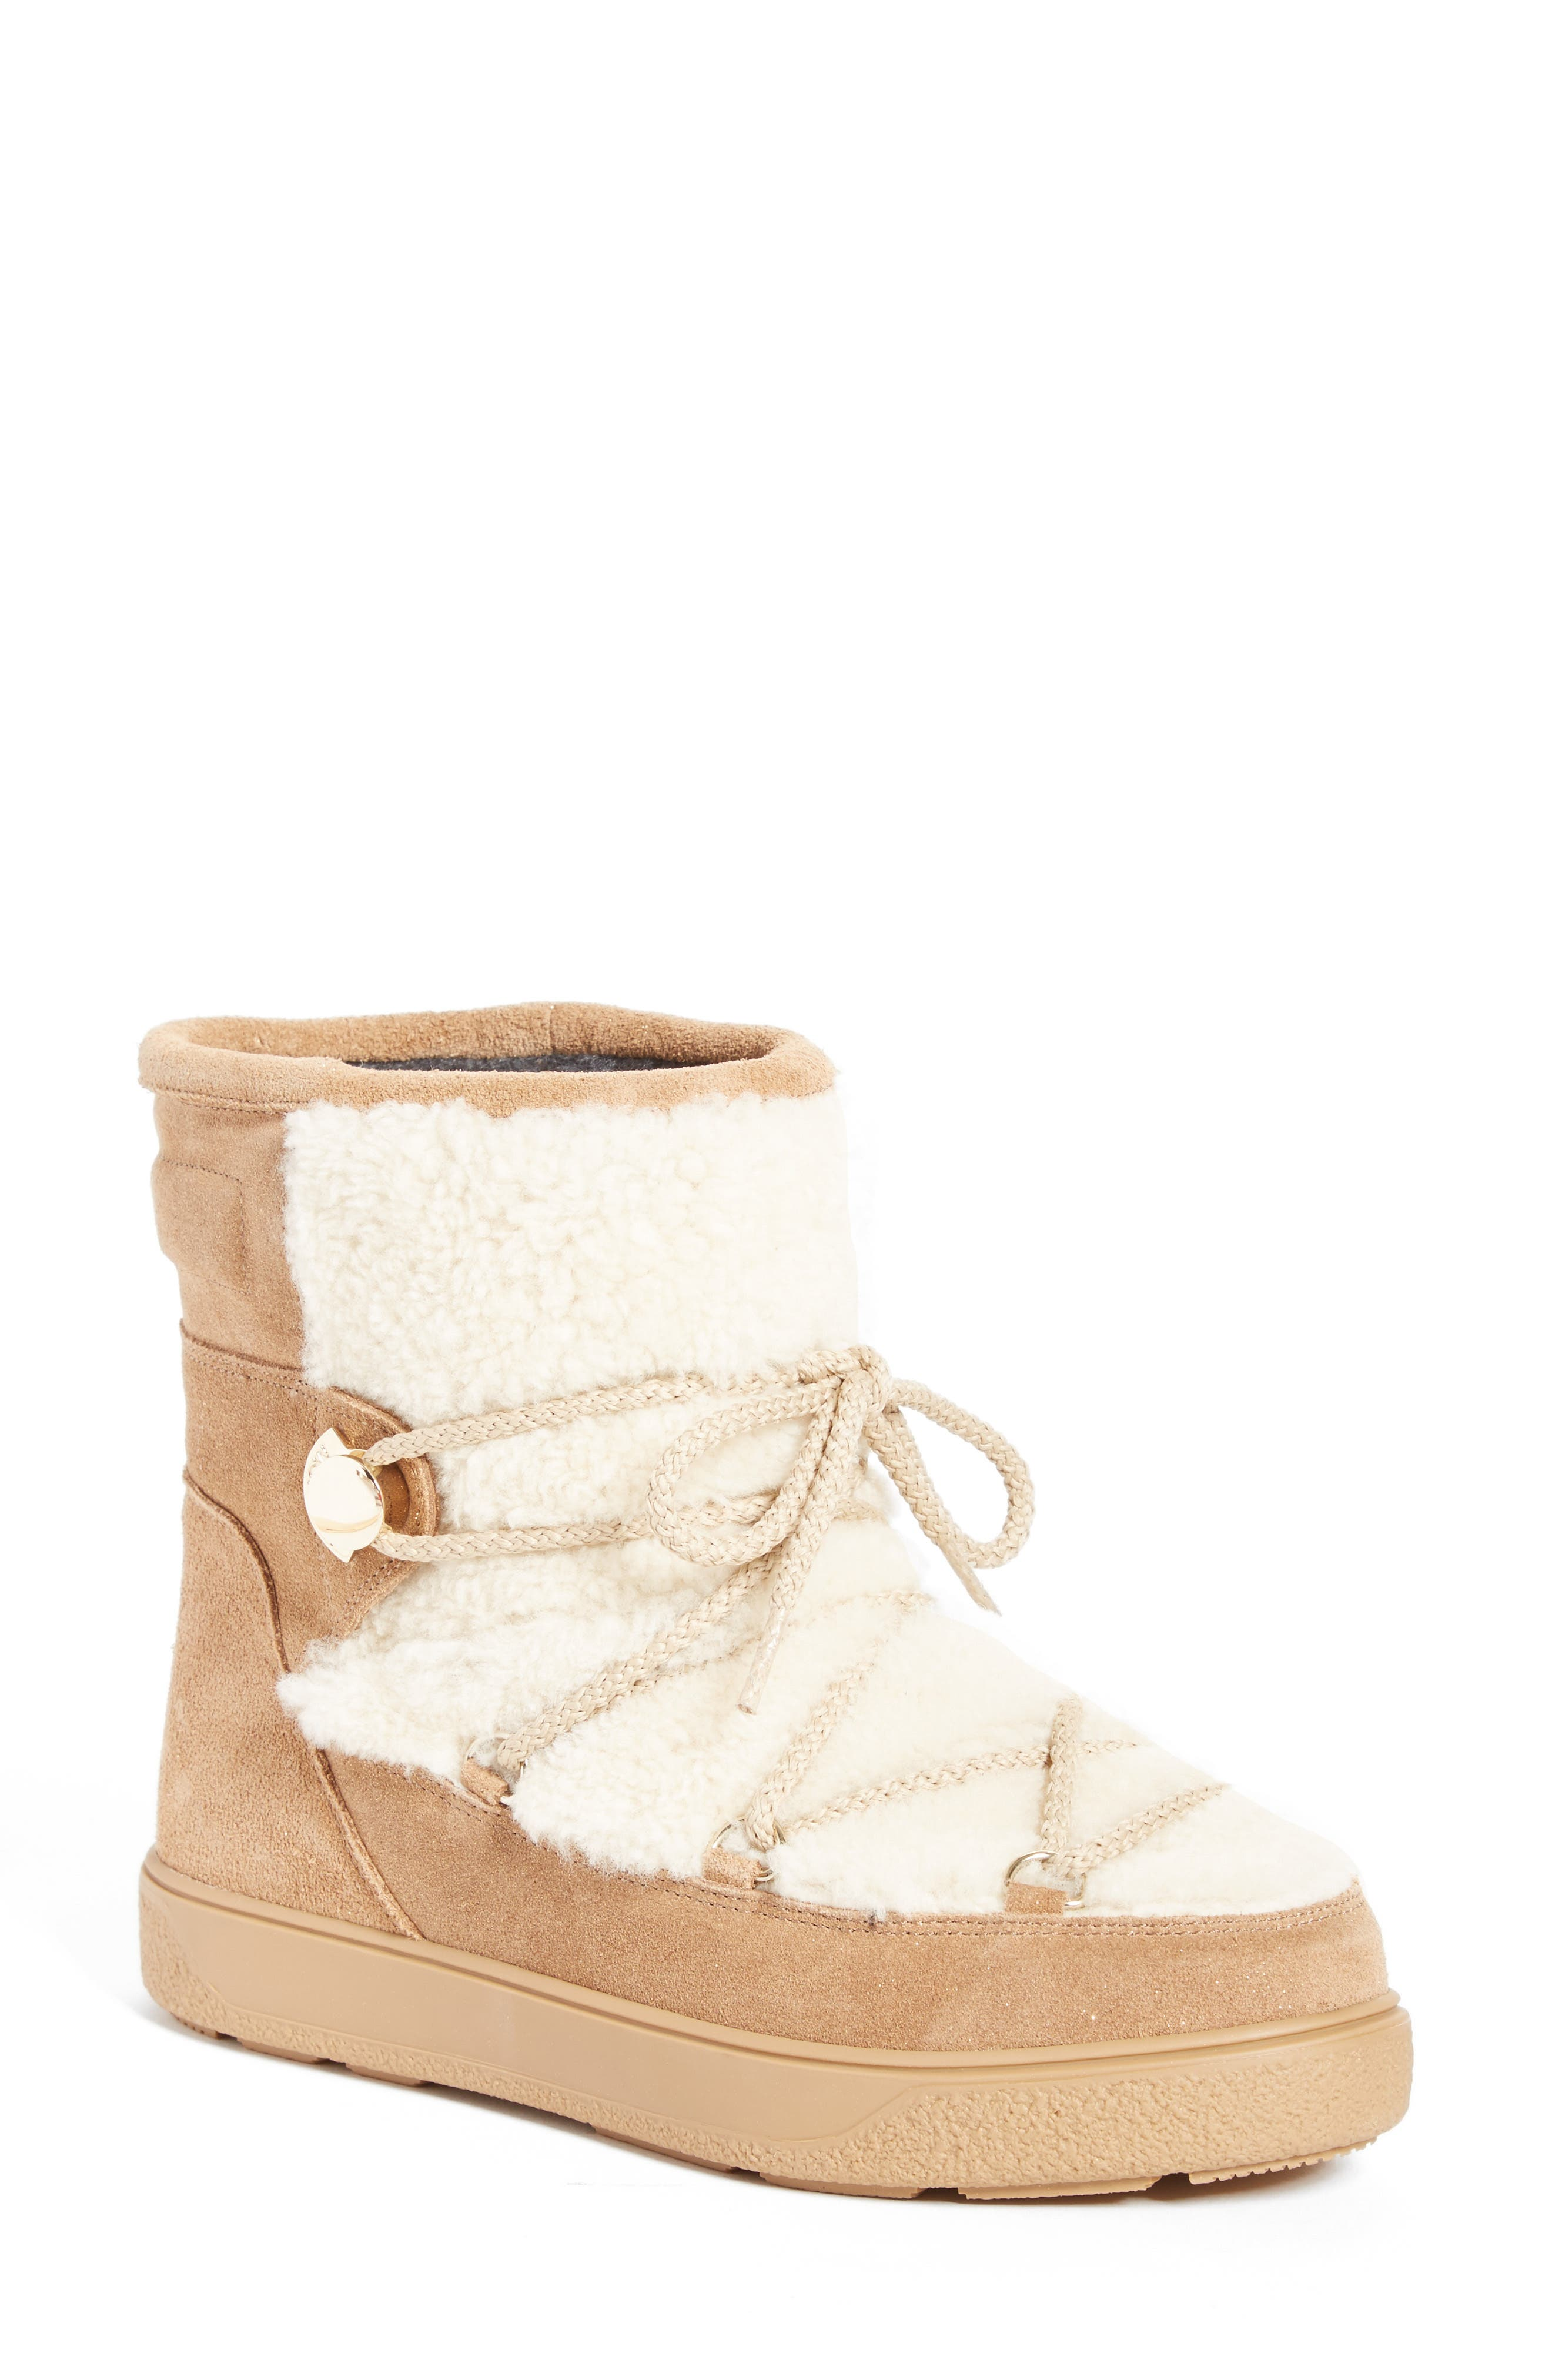 New Fanny Stivale Genuine Shearling Short Moon Boots,                         Main,                         color,